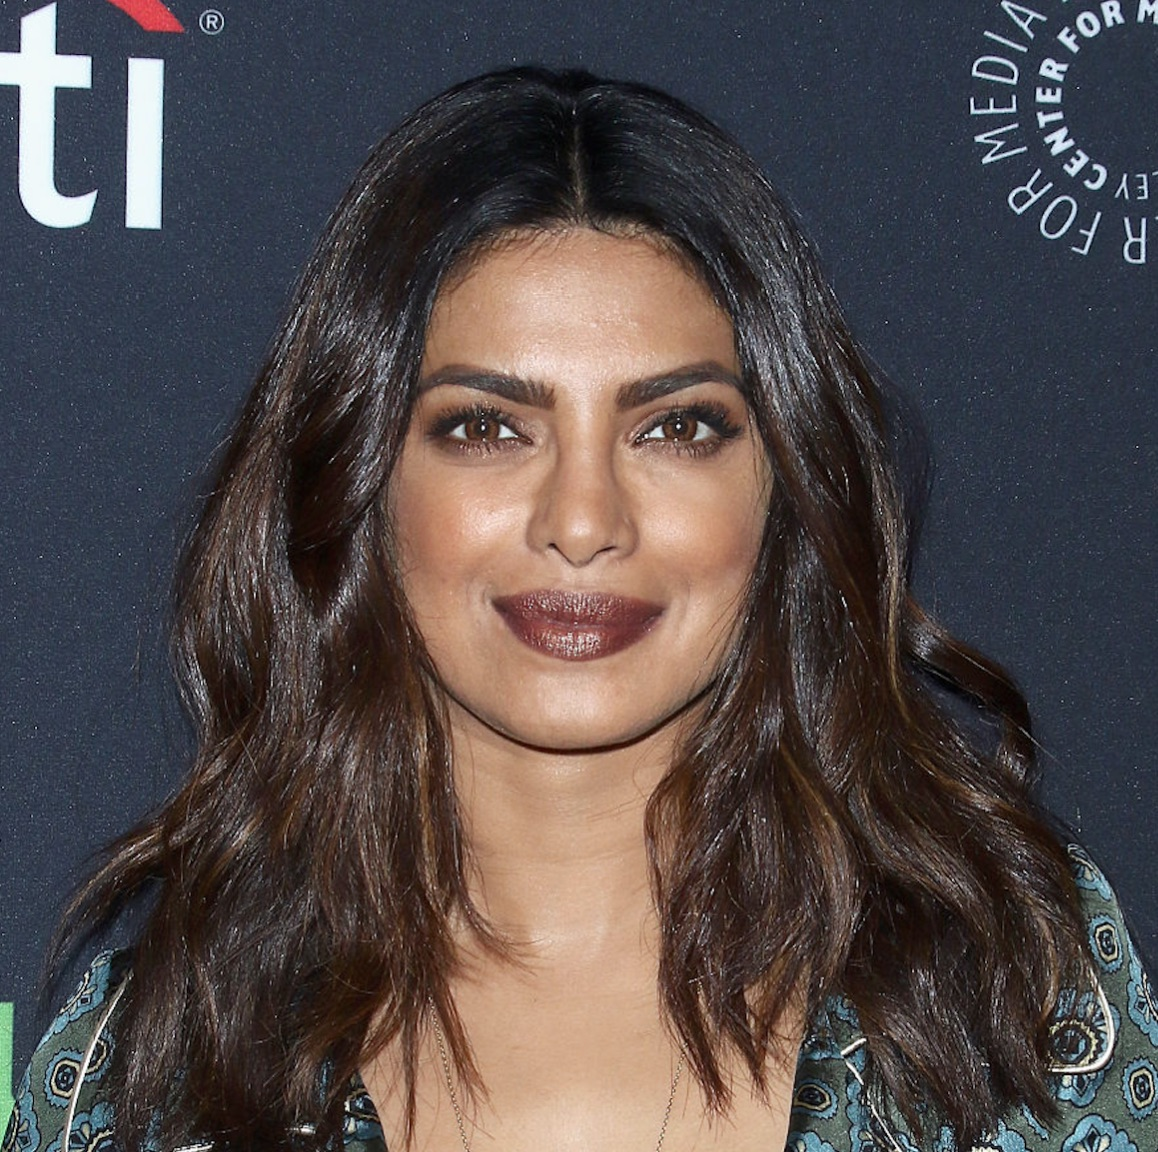 Priyanka Chopra wore an incredible emerald silk pattern dress and we can't look away